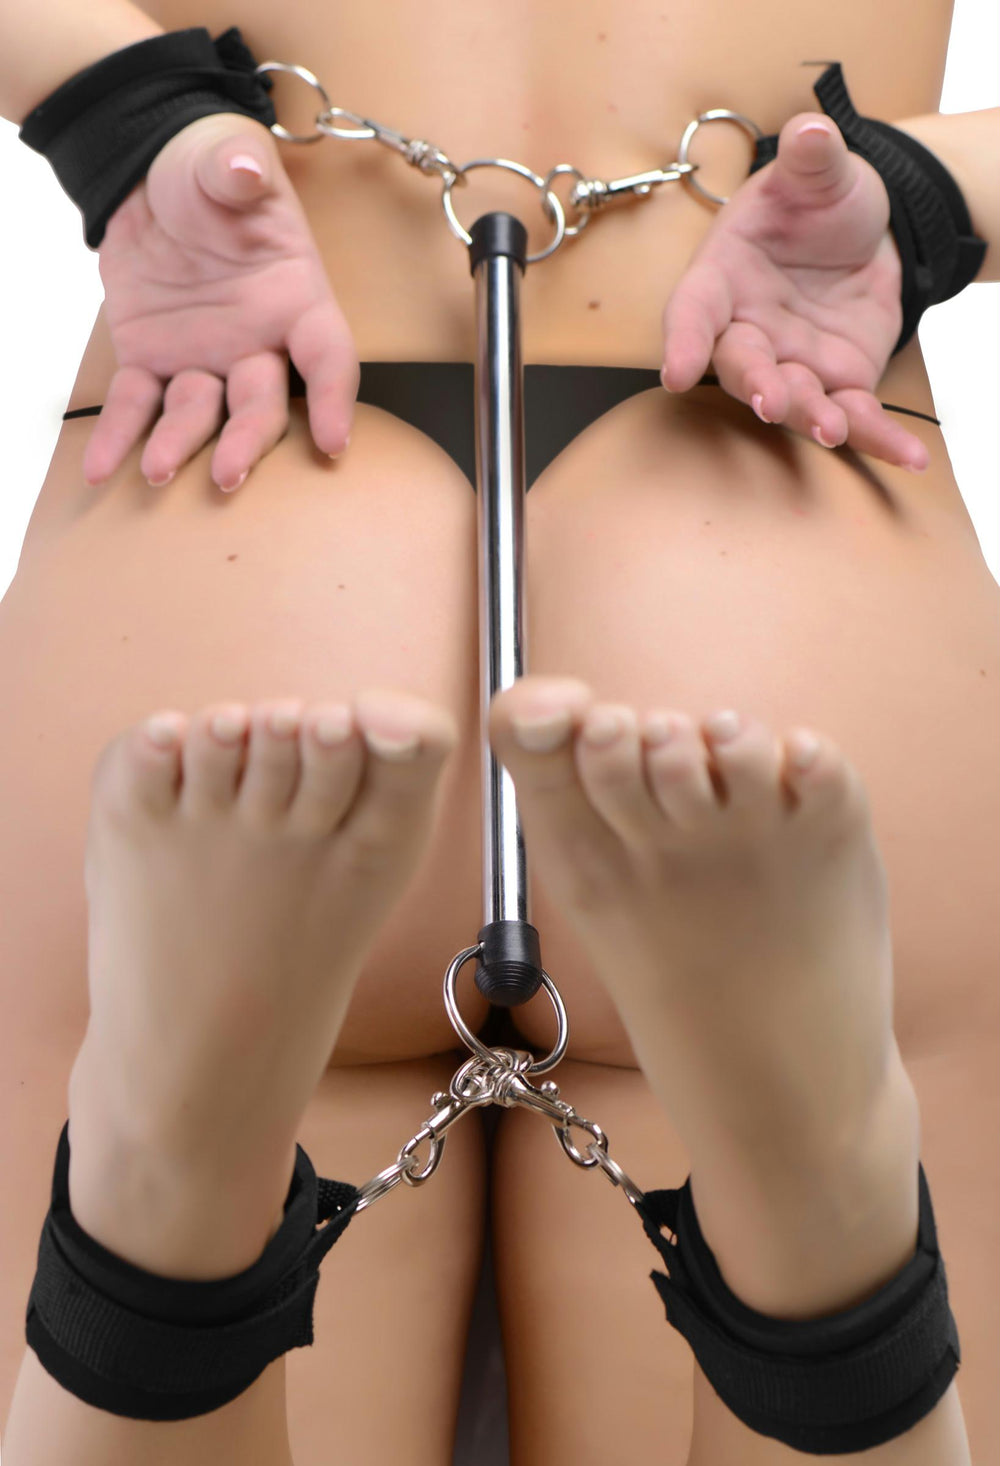 24 Inch Bondage Bar Kit with Cuffs - Fun and Kinky Sex Toys